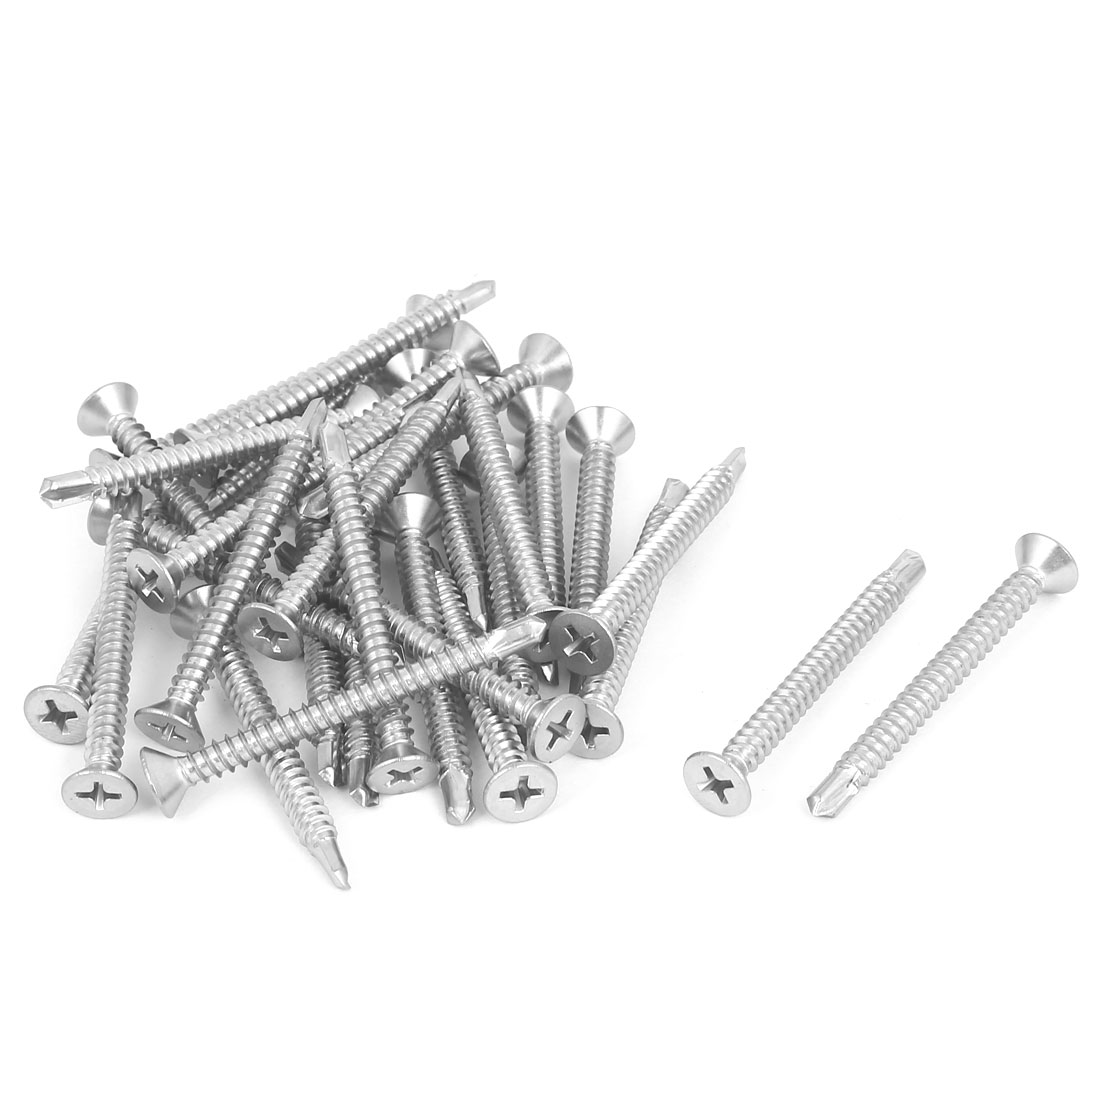 M4.8x50mm 410 Stainless Steel Countersunk Head Self Drilling Screws Bolts 30 Pcs